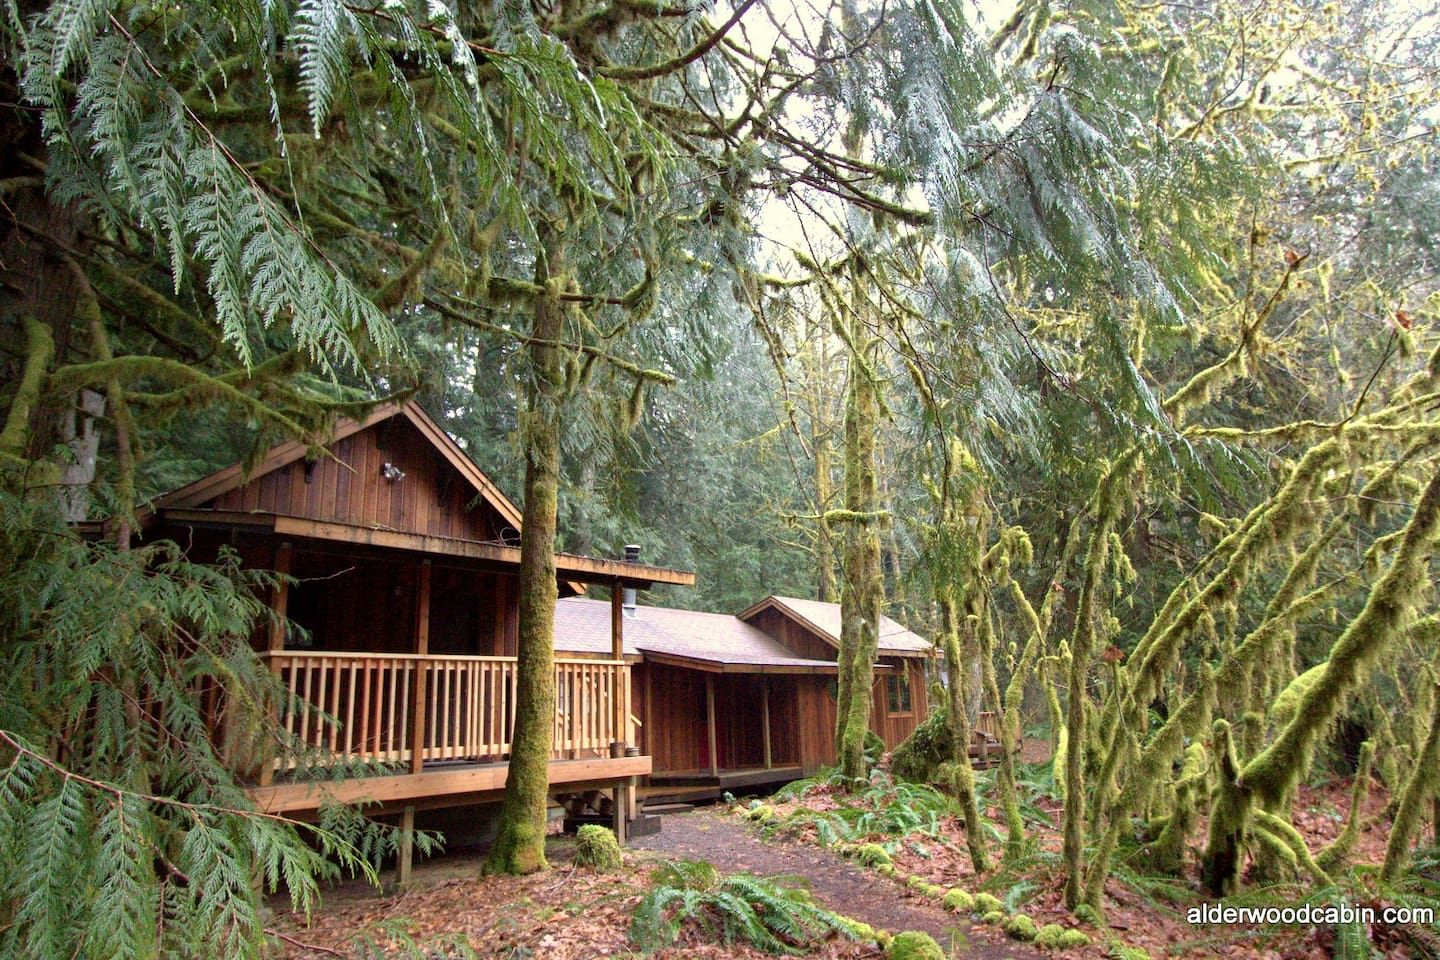 oregon cabin hand steiner log cabins img mt the mount a of s foothills in on hood hewn